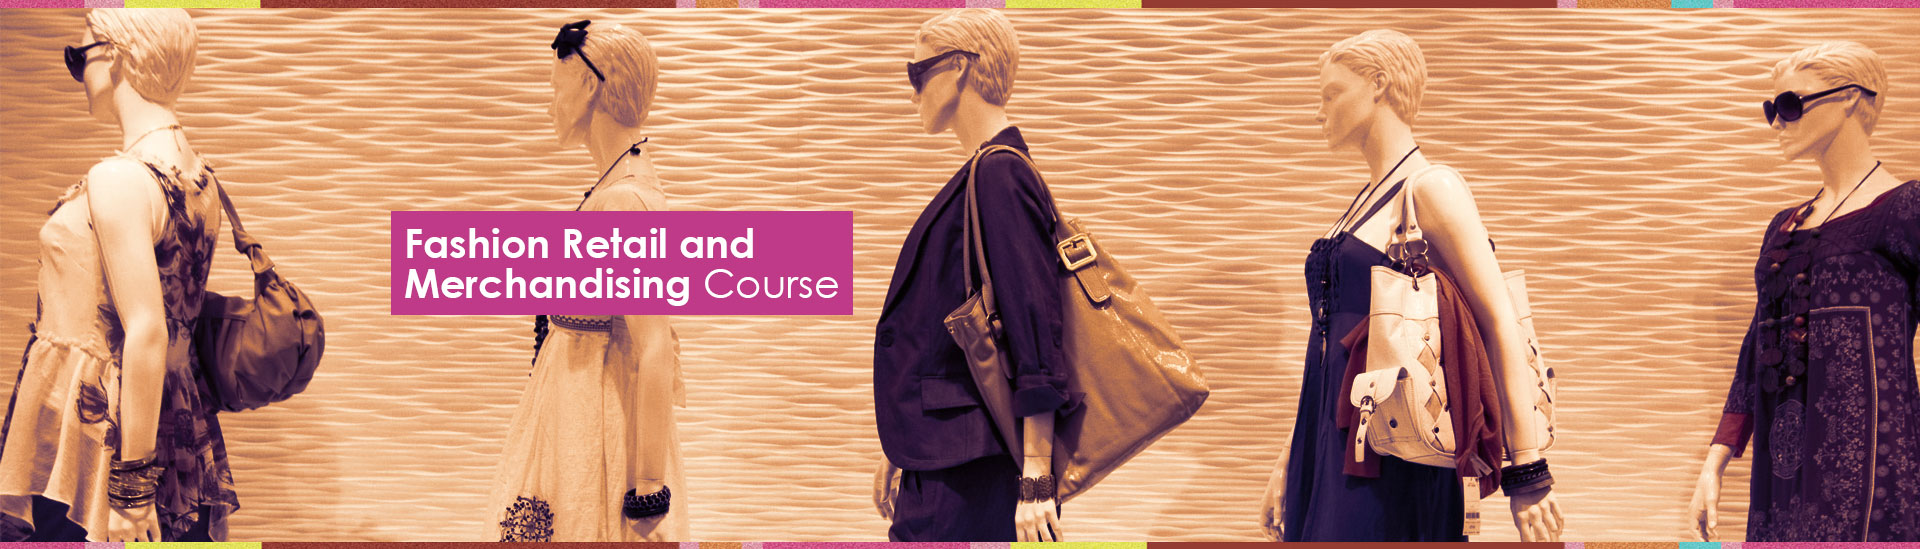 Top Institute For Fashion Retail And Merchandising Courses In South Delhi India